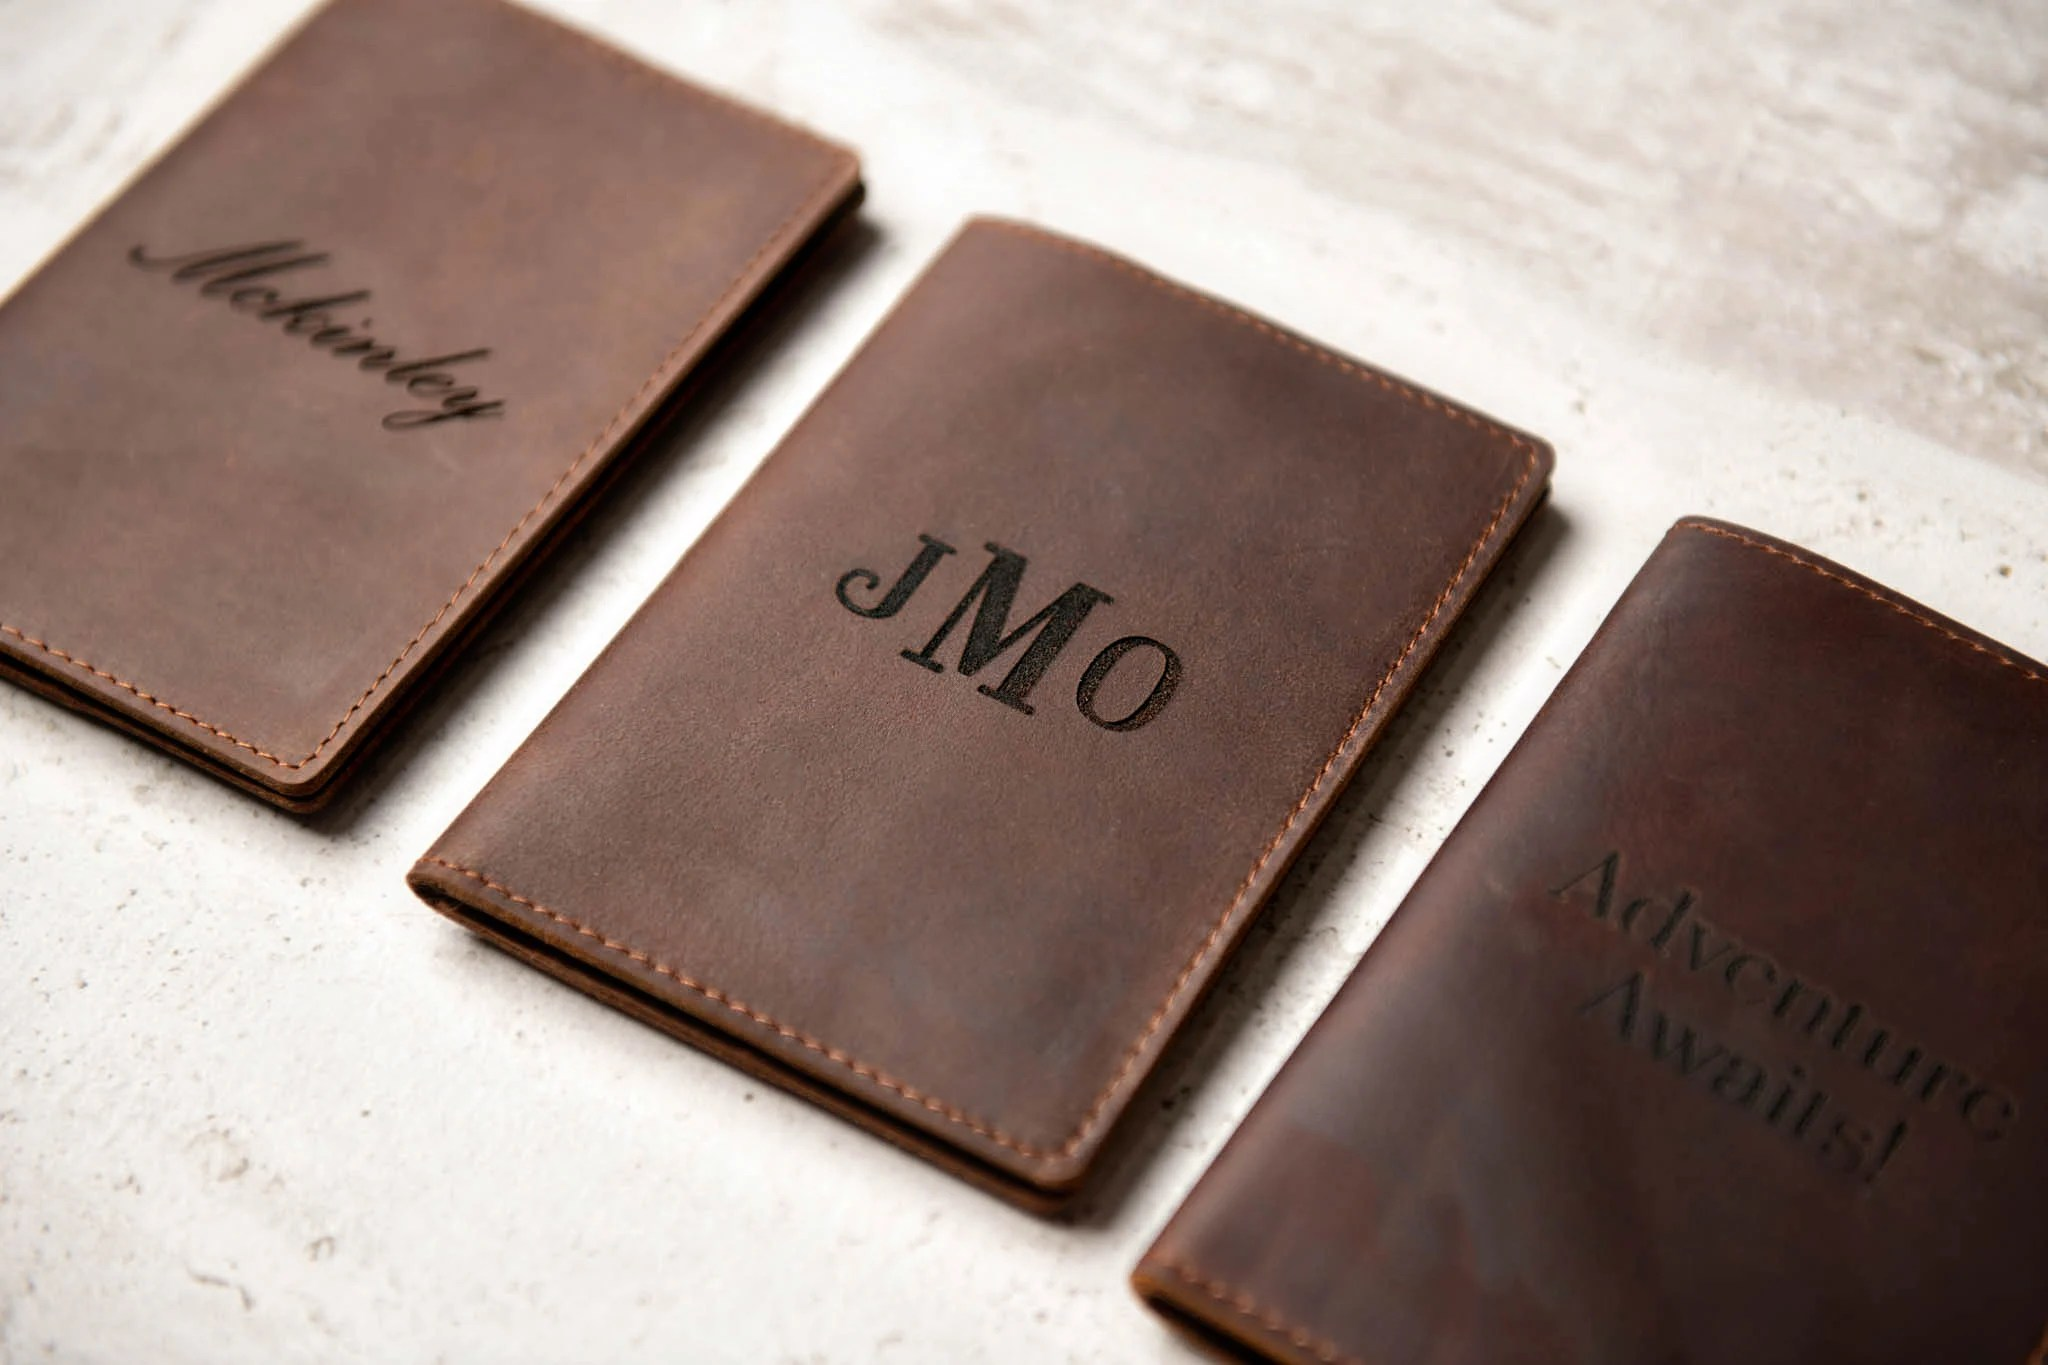 Personalized Leather Passport Cover Holder by Left Coast Large on Cover